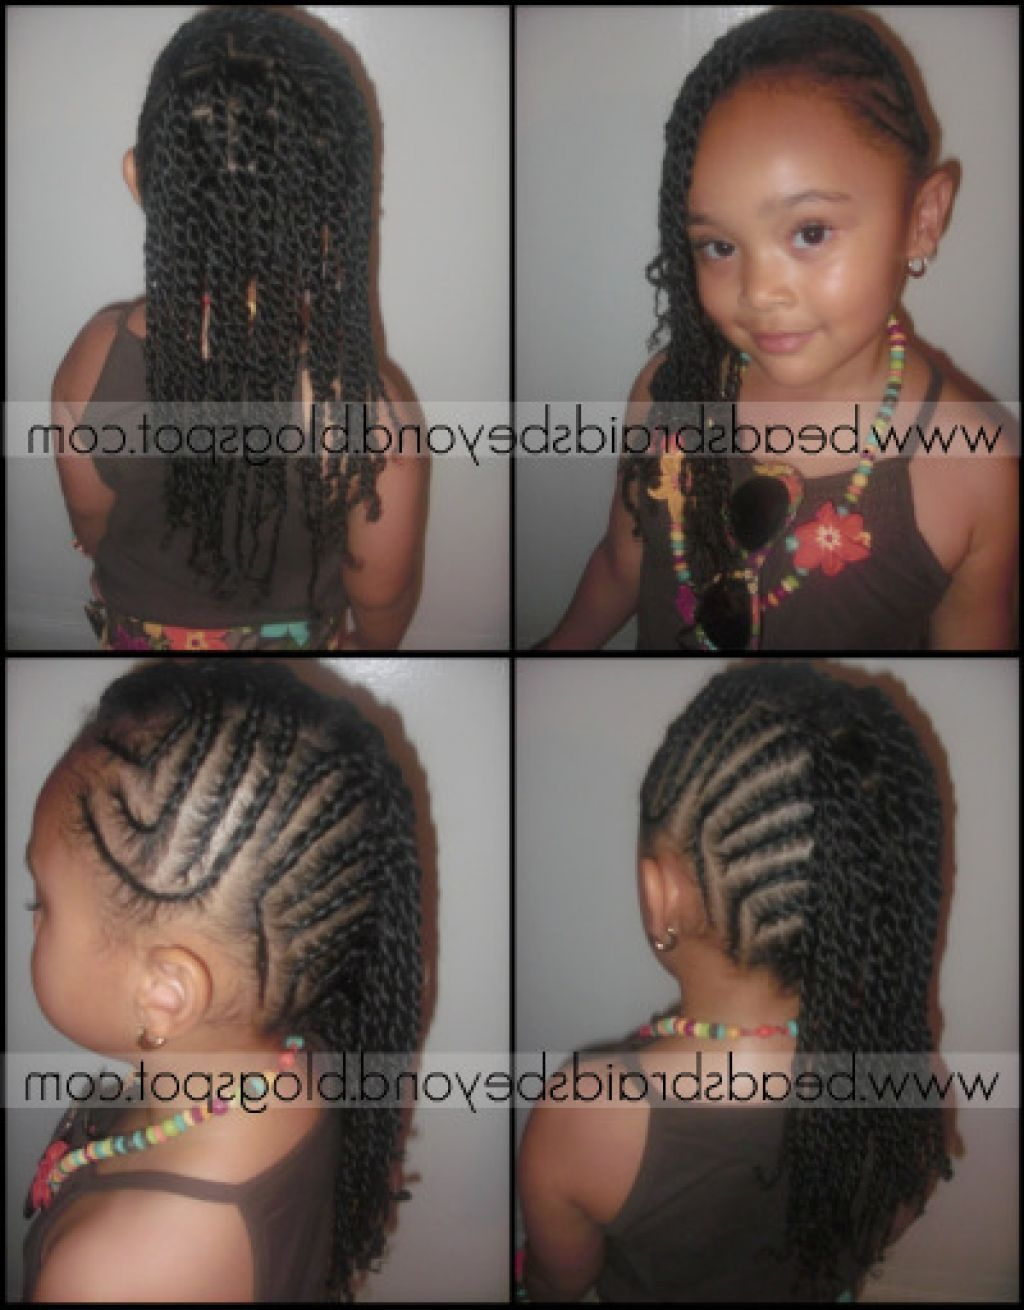 Braided Hairstyles For Lil Girls  Google Search